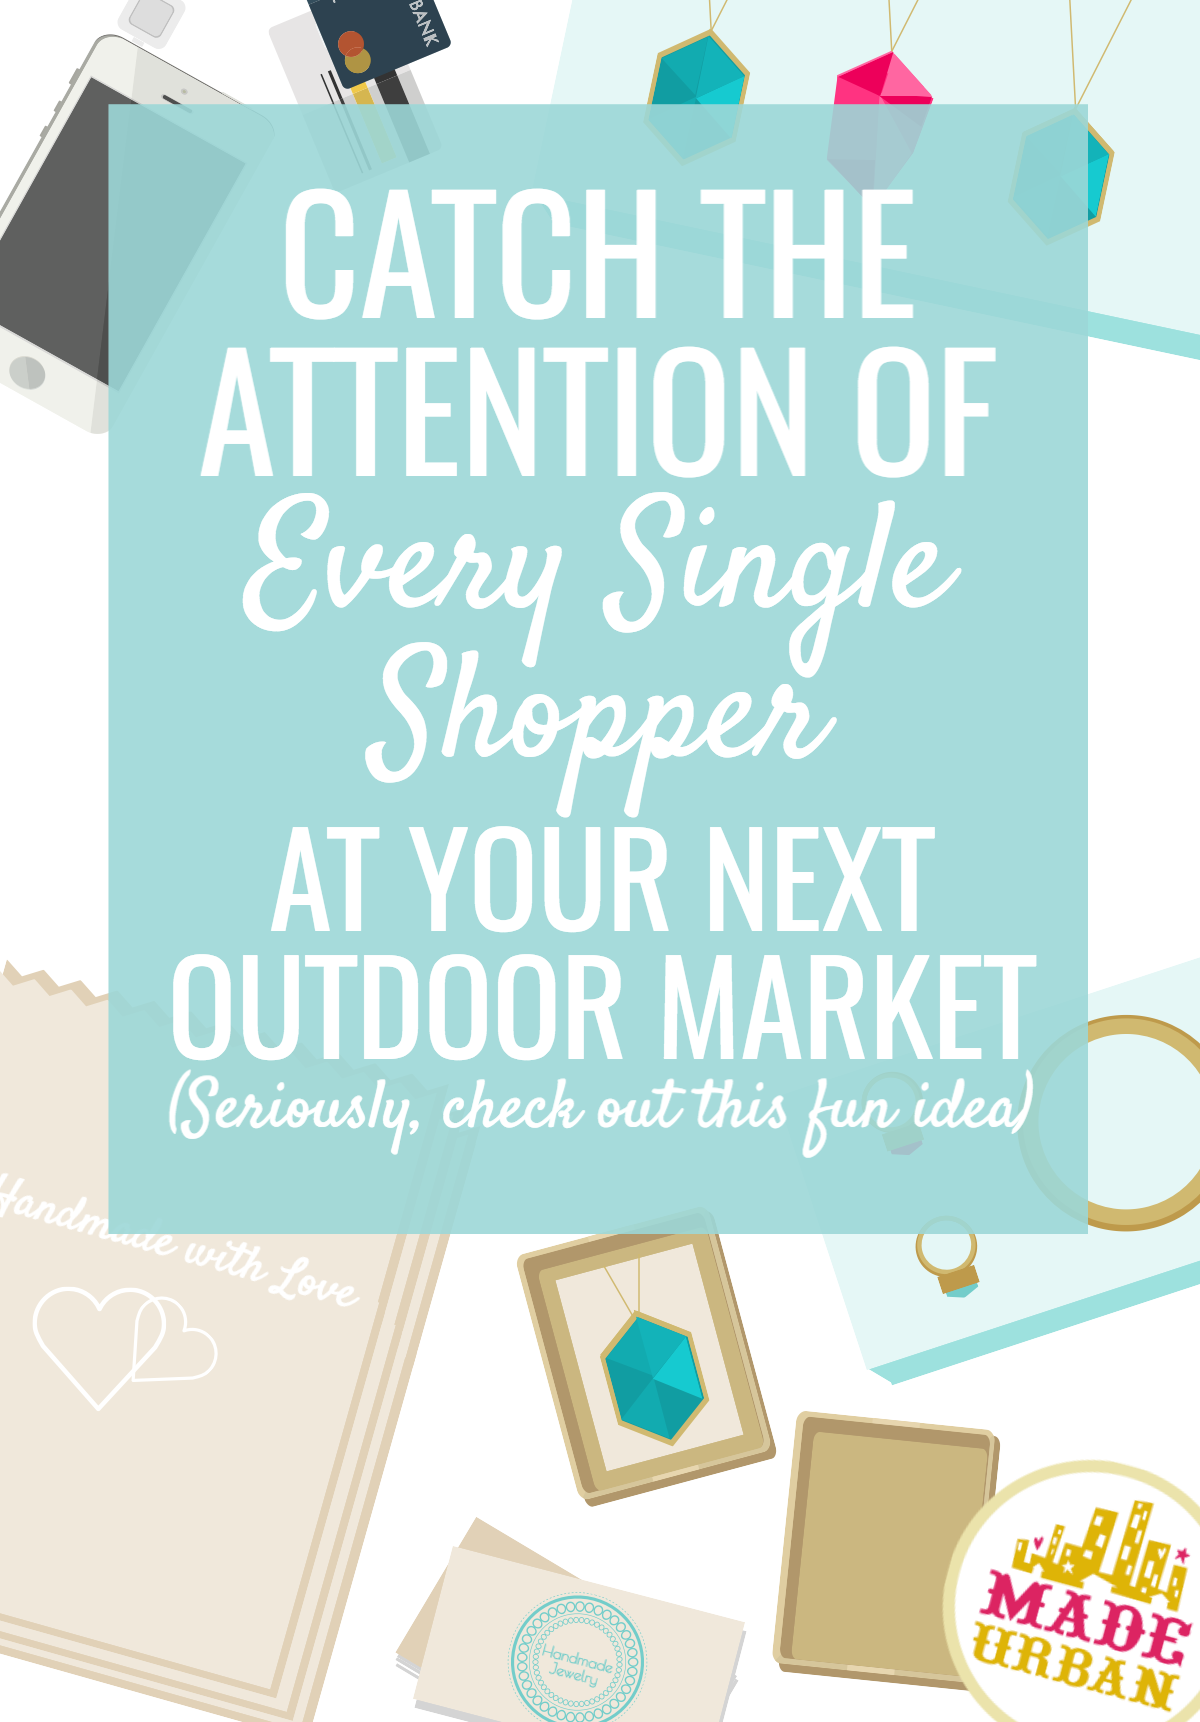 If you're selling at a farmers' market or outdoor event, you'll love these unconventional ideas to draw shoppers over to your market stall.